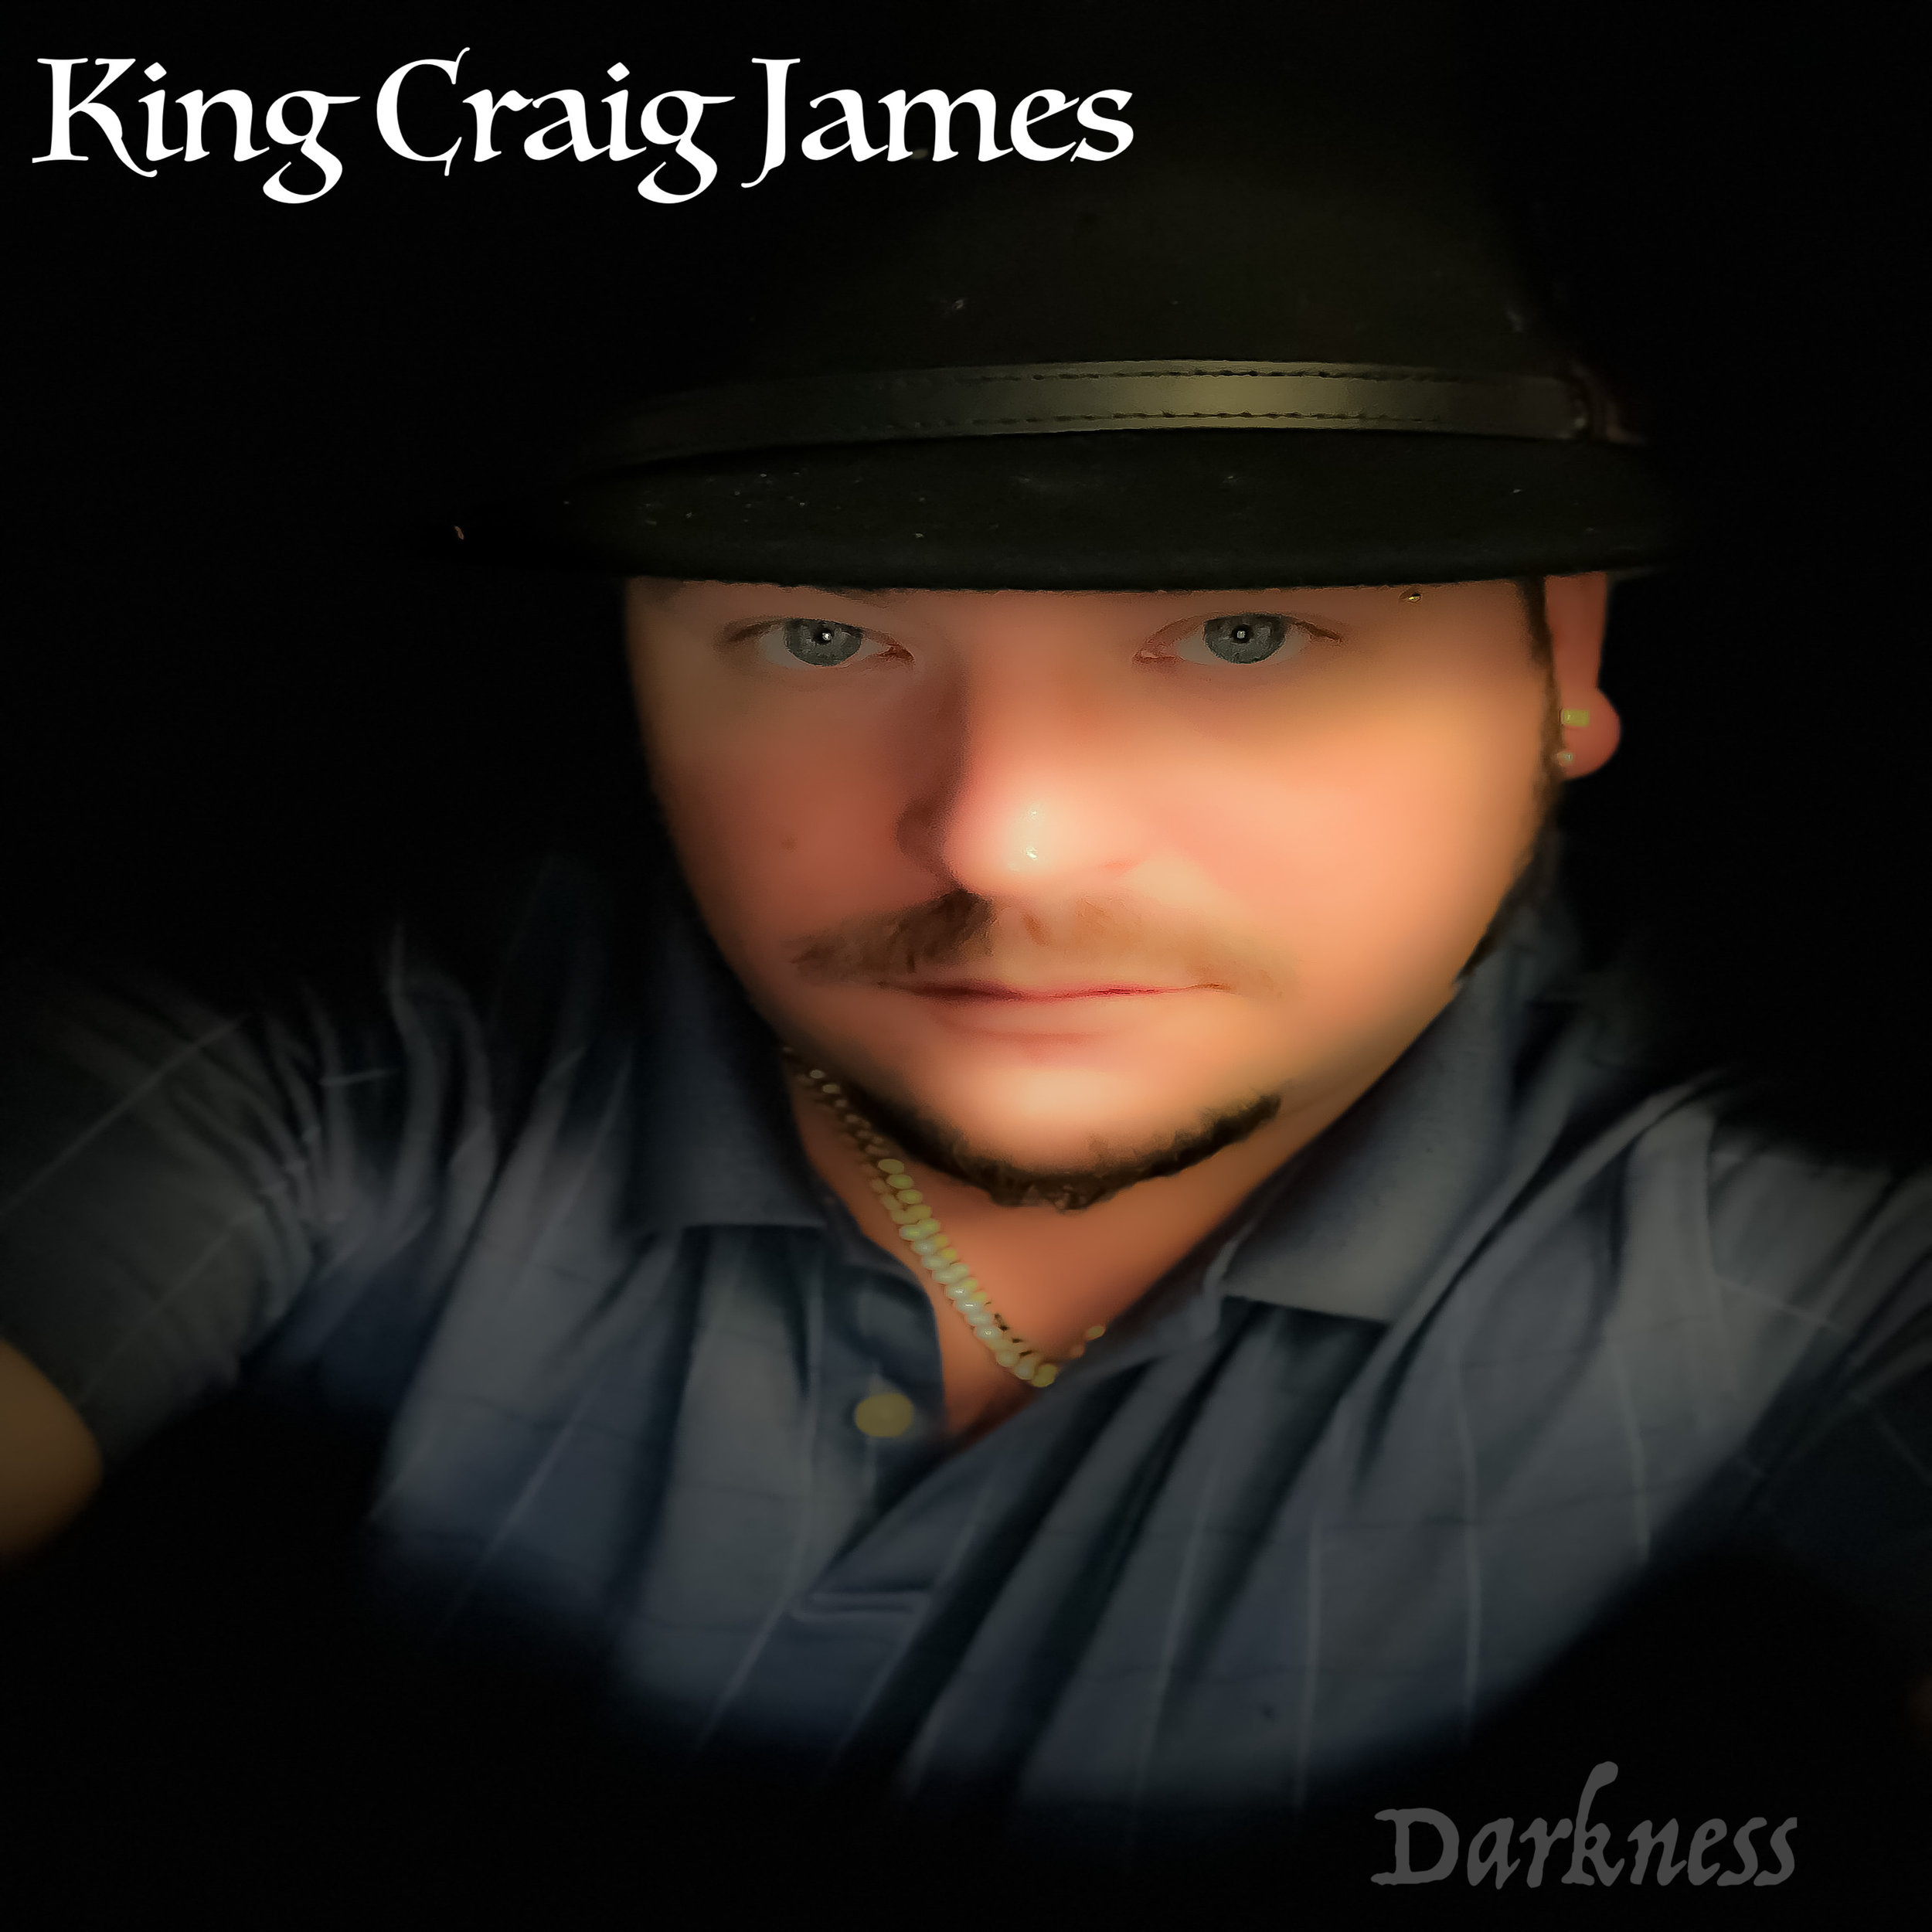 """Darkness"", is a 5 track album by the one and only King Craig James."